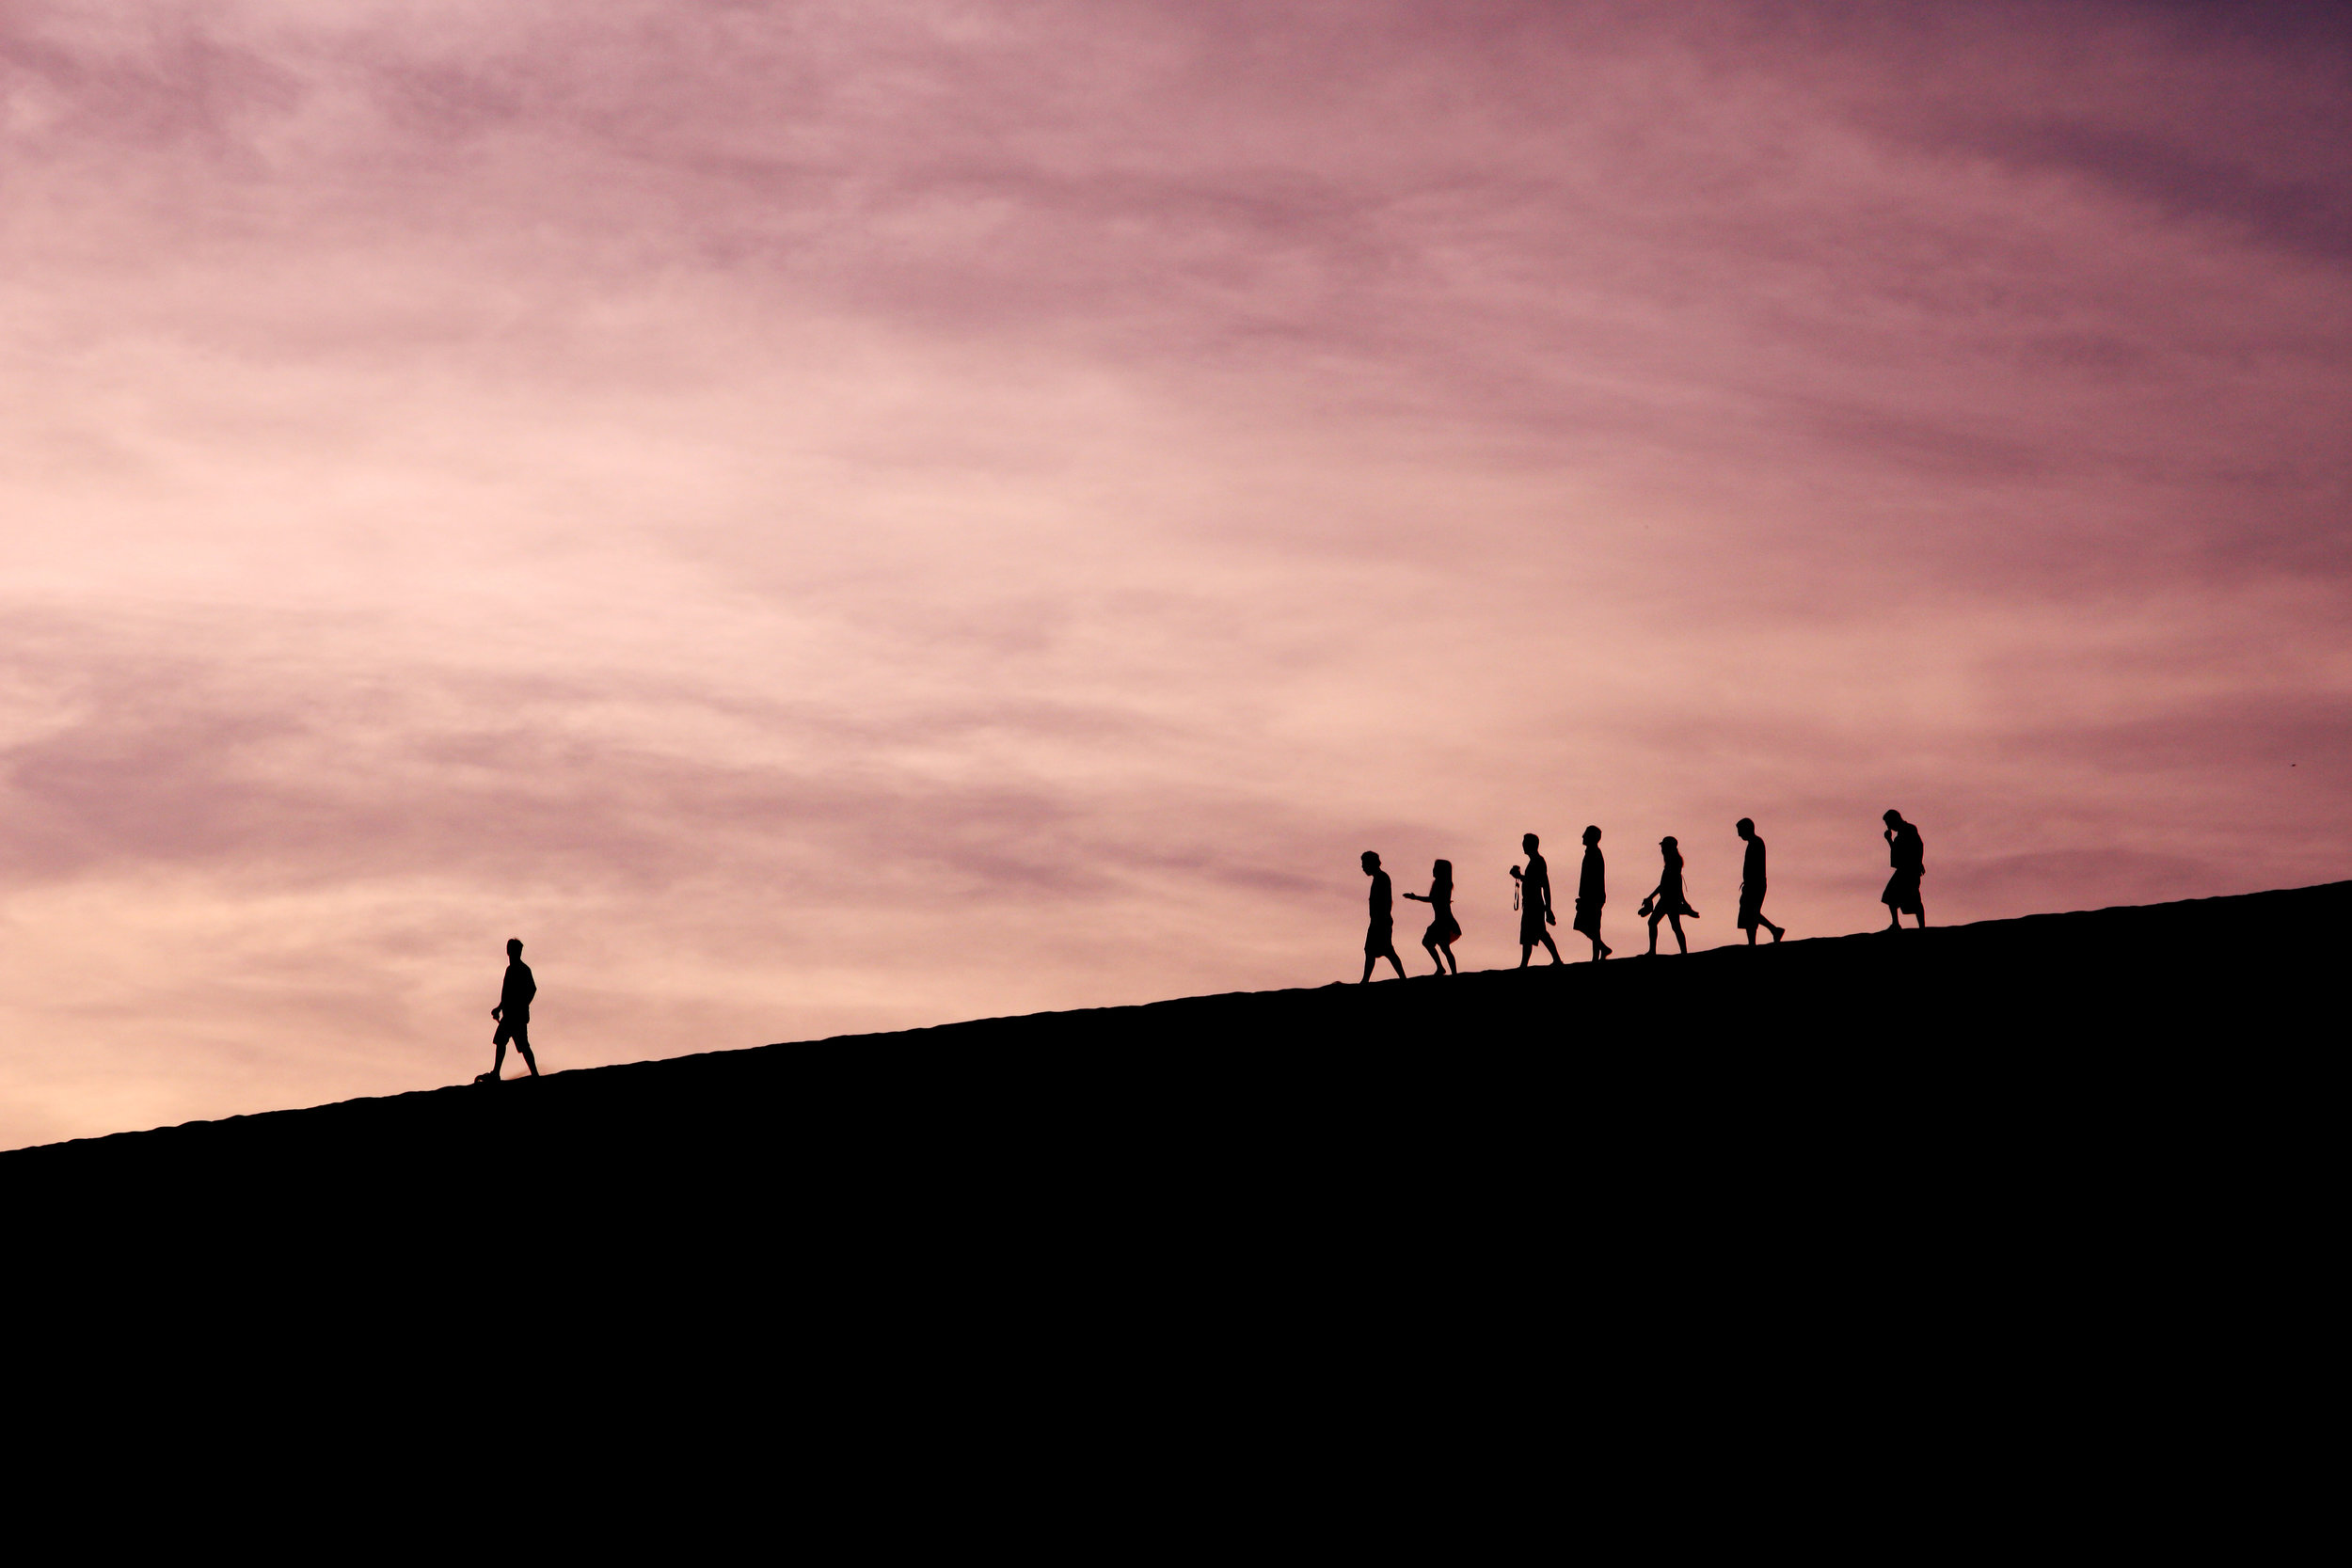 A leader leading his friends down a hill at sunset.